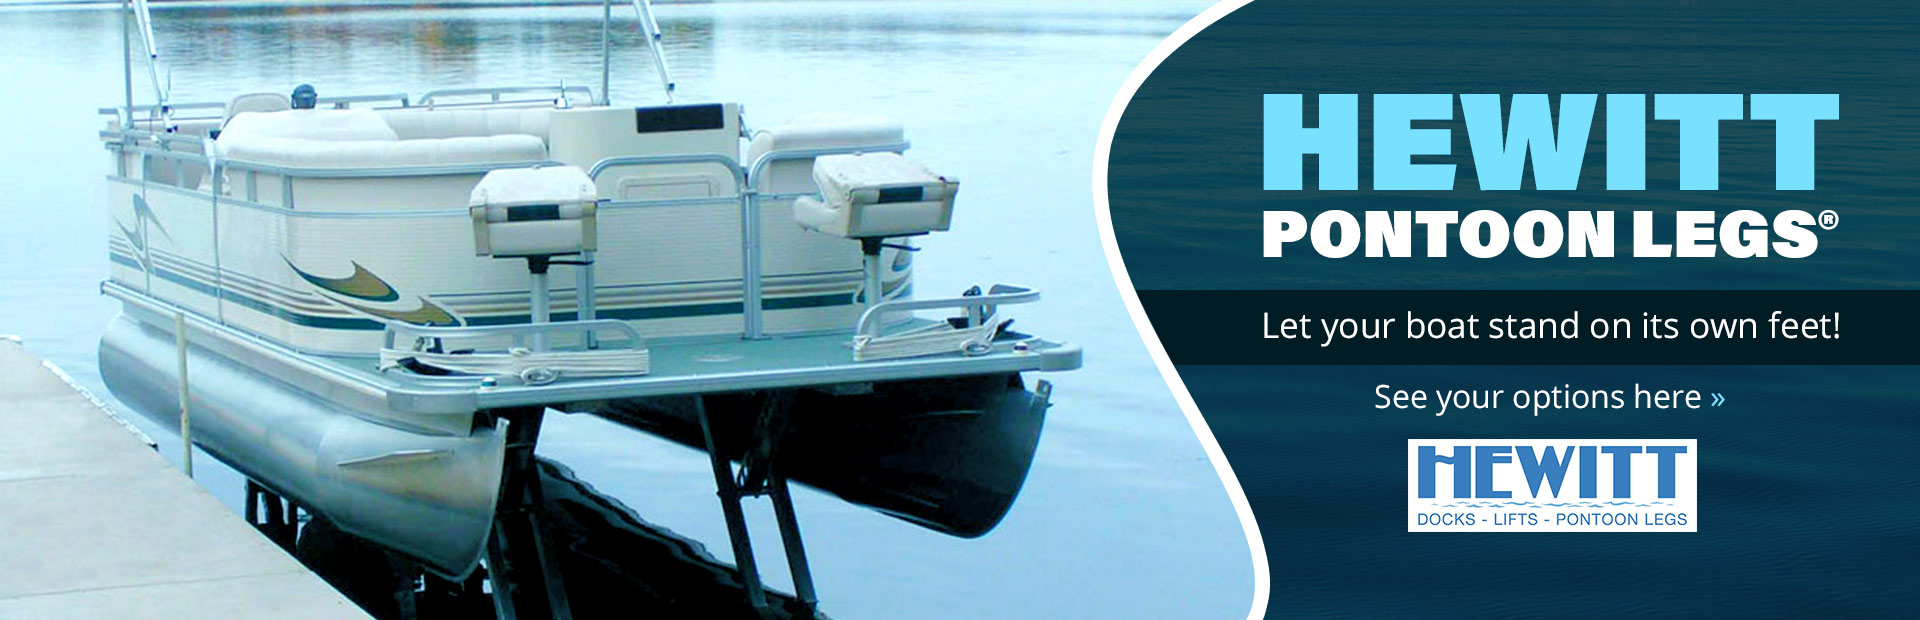 Hewitt Pontoon Legs®: Let your boat stand on its own feet! Click here to see your options.